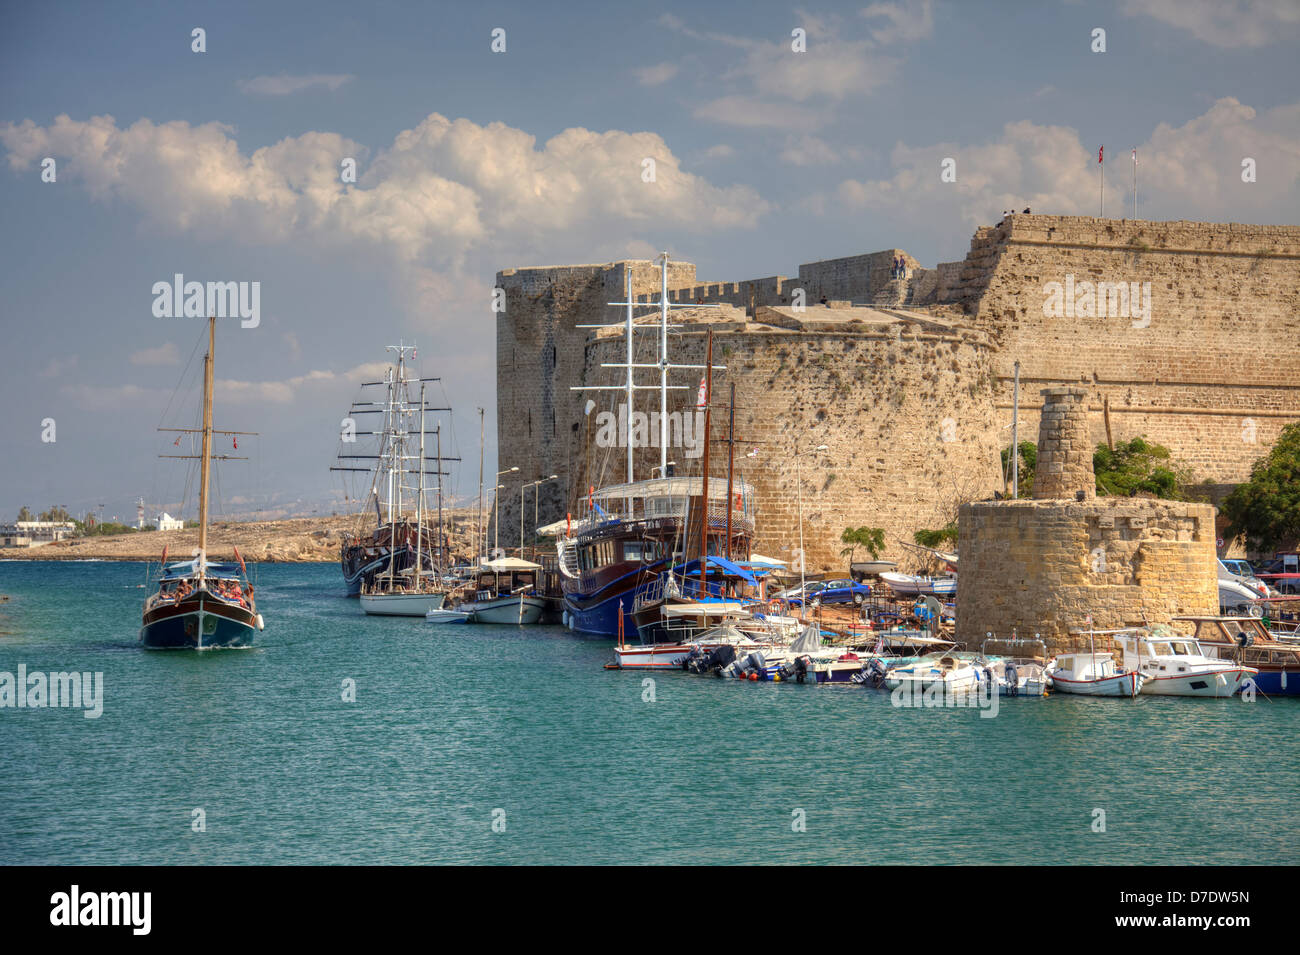 Medieval castle and harbour in Kyrenia, Cyprus. - Stock Image